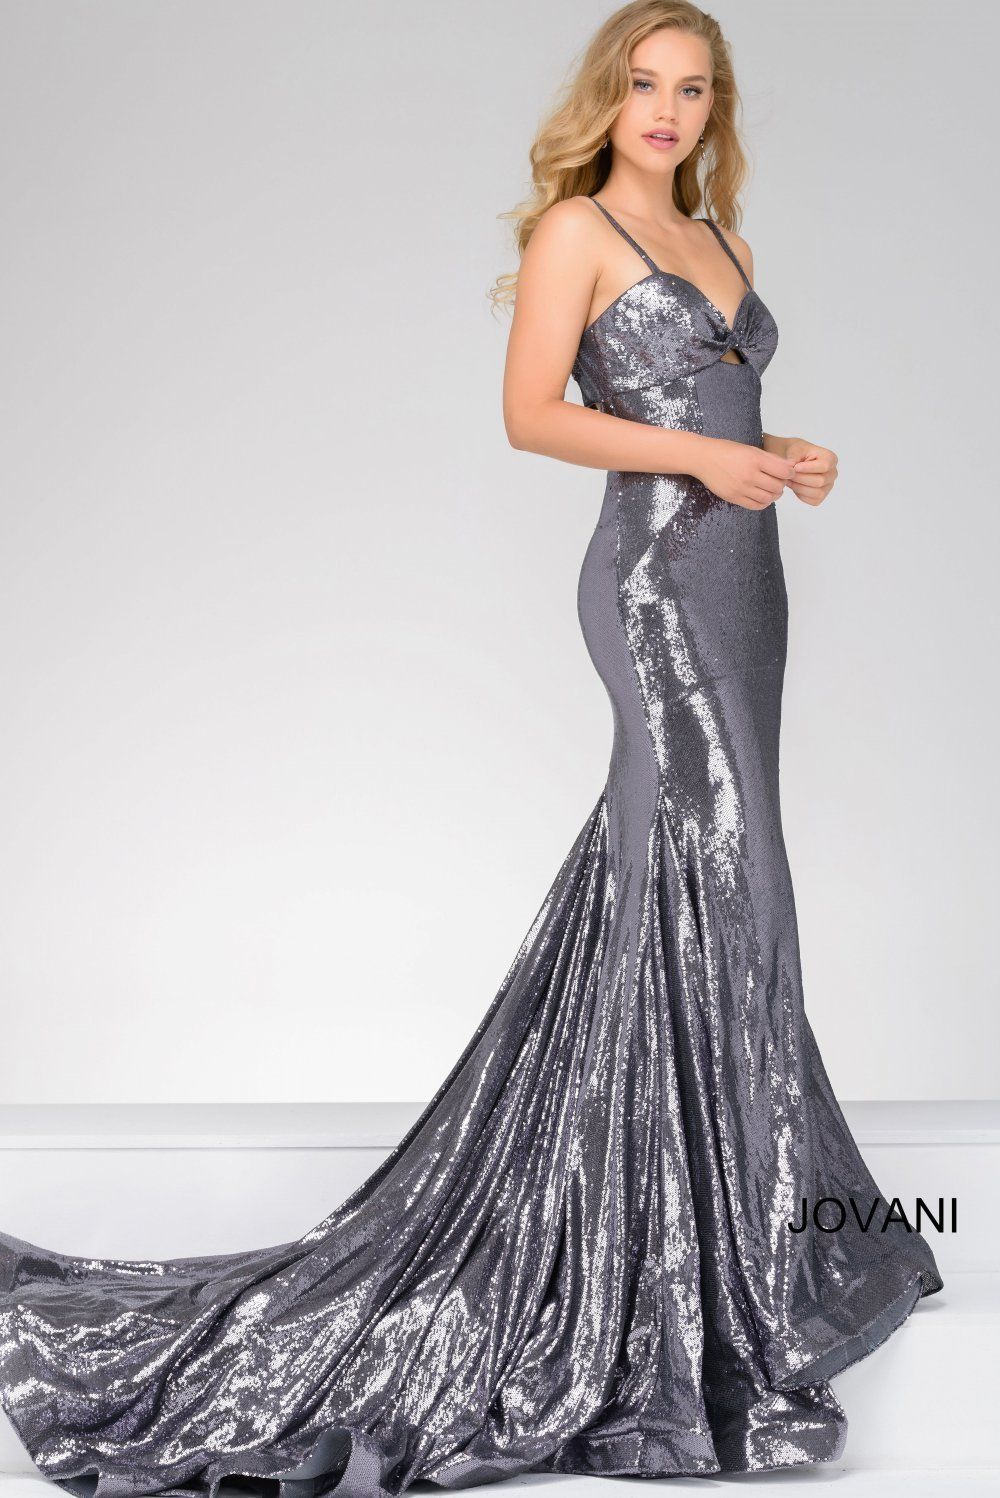 Awesome jovani dress gown prom price guaranteelayaway